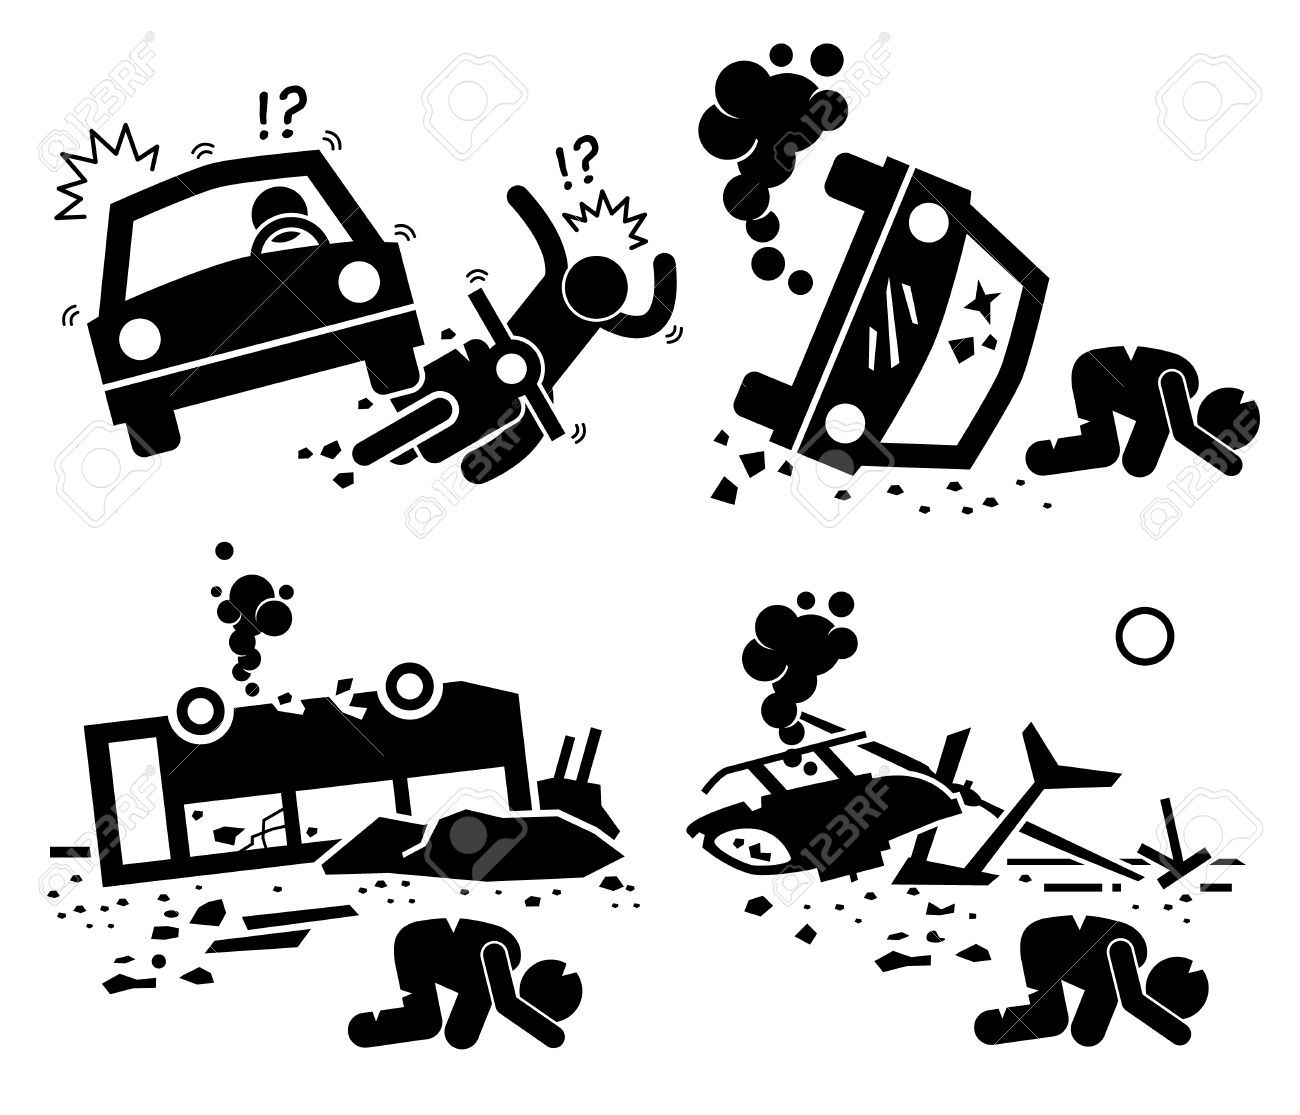 Disaster Accident Tragedy Of Car Motorcycle Collision Bus